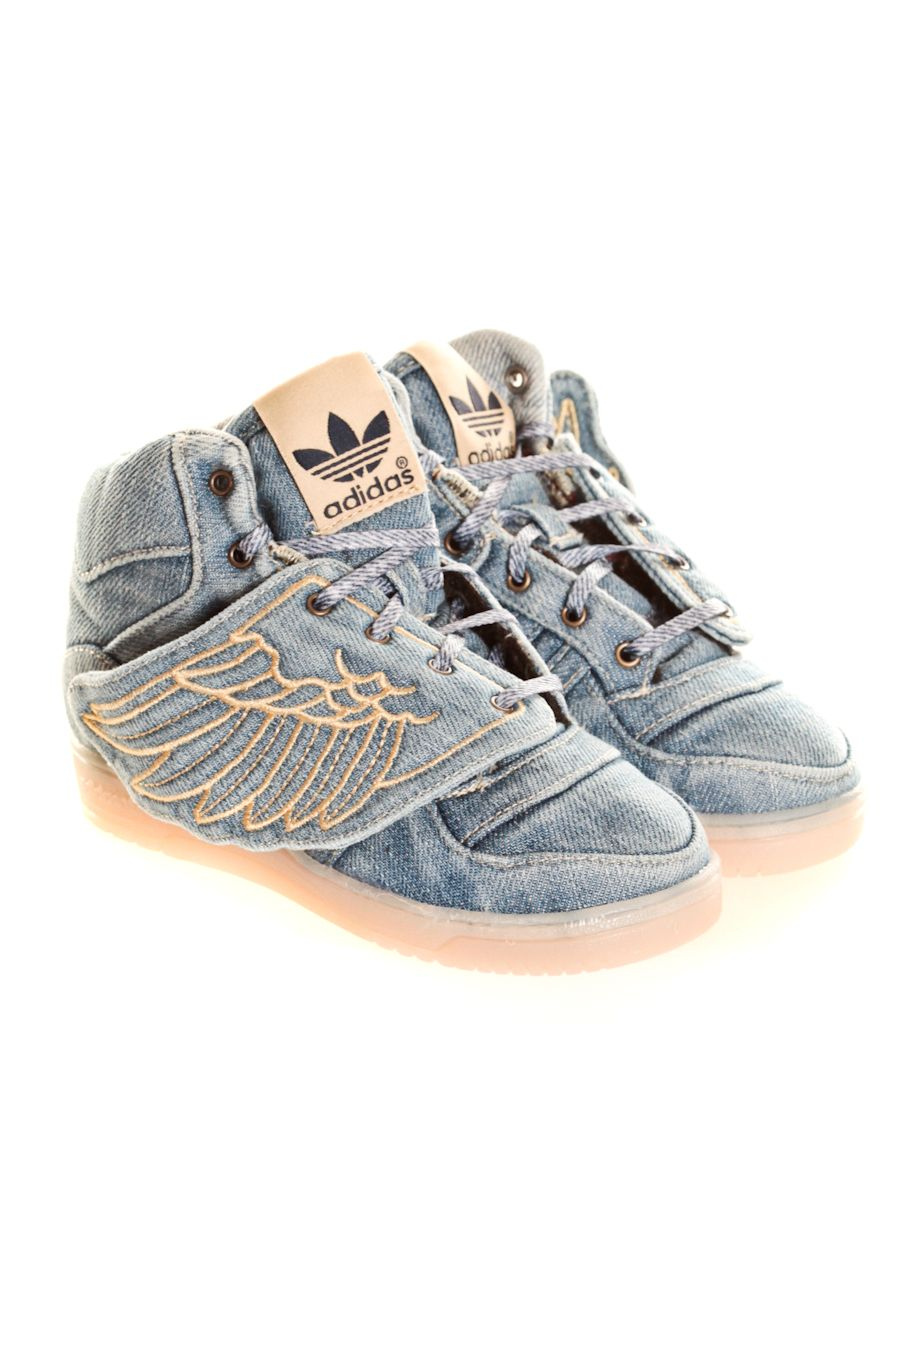 chaussure adidas ailes prix